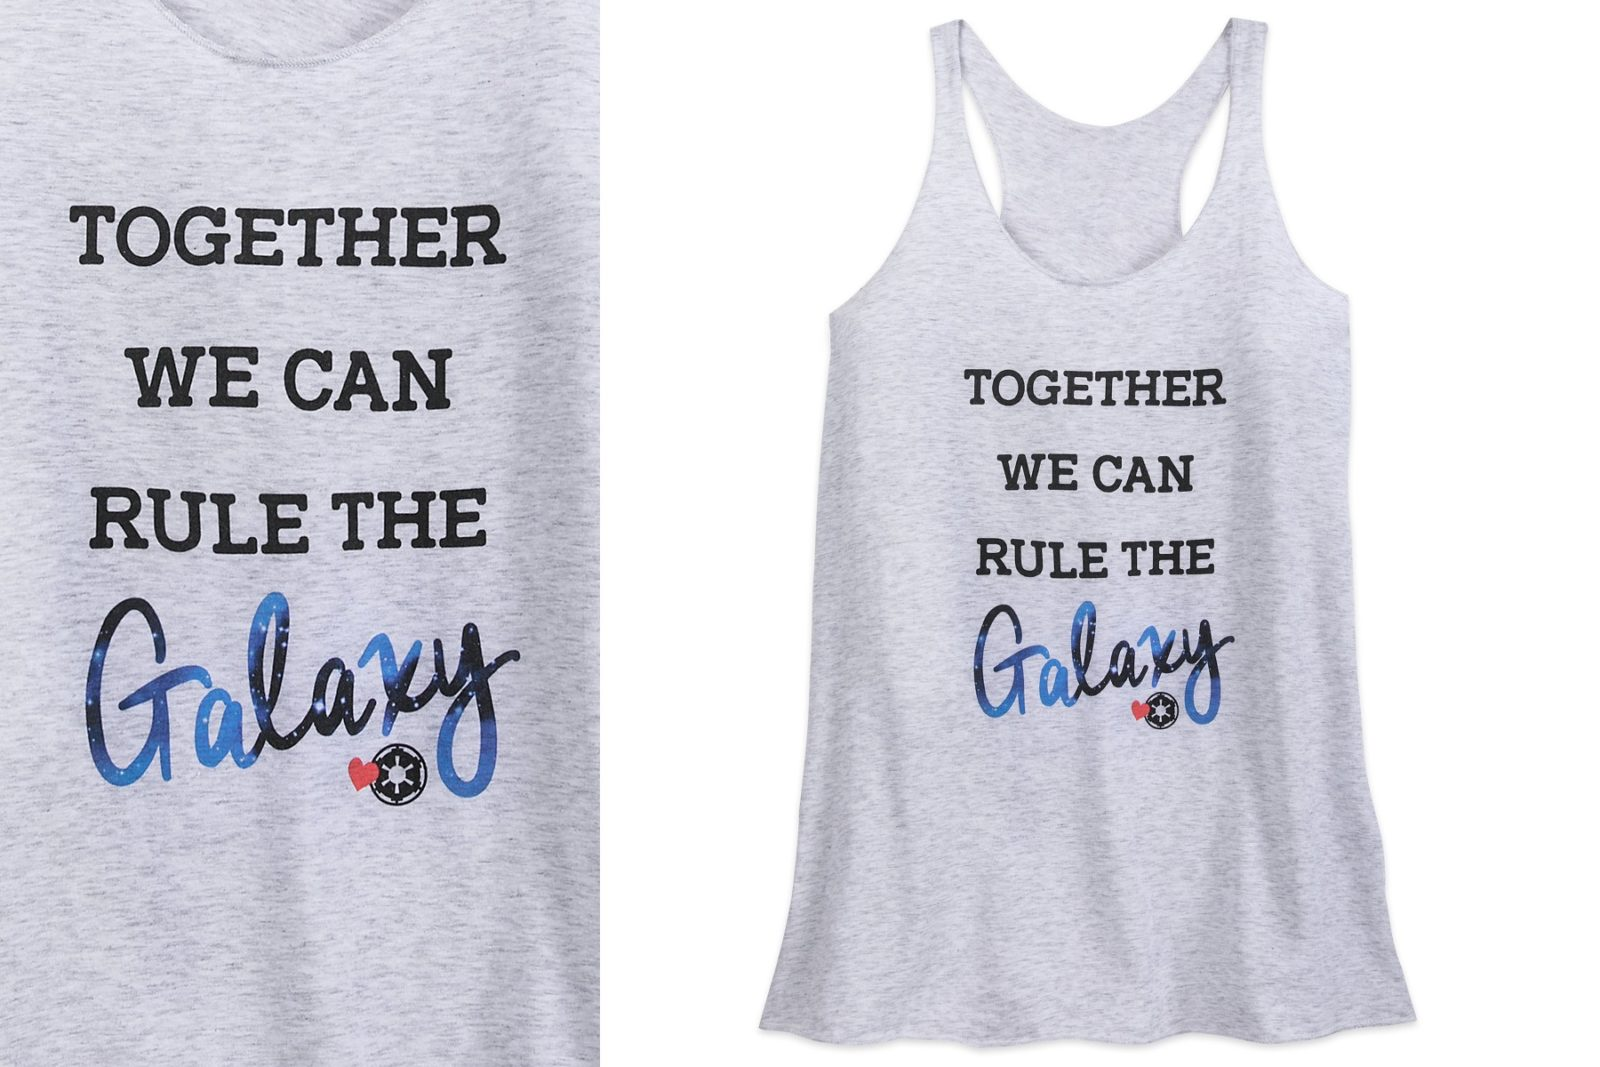 Women's Star Wars Tank Top at Shop Disney